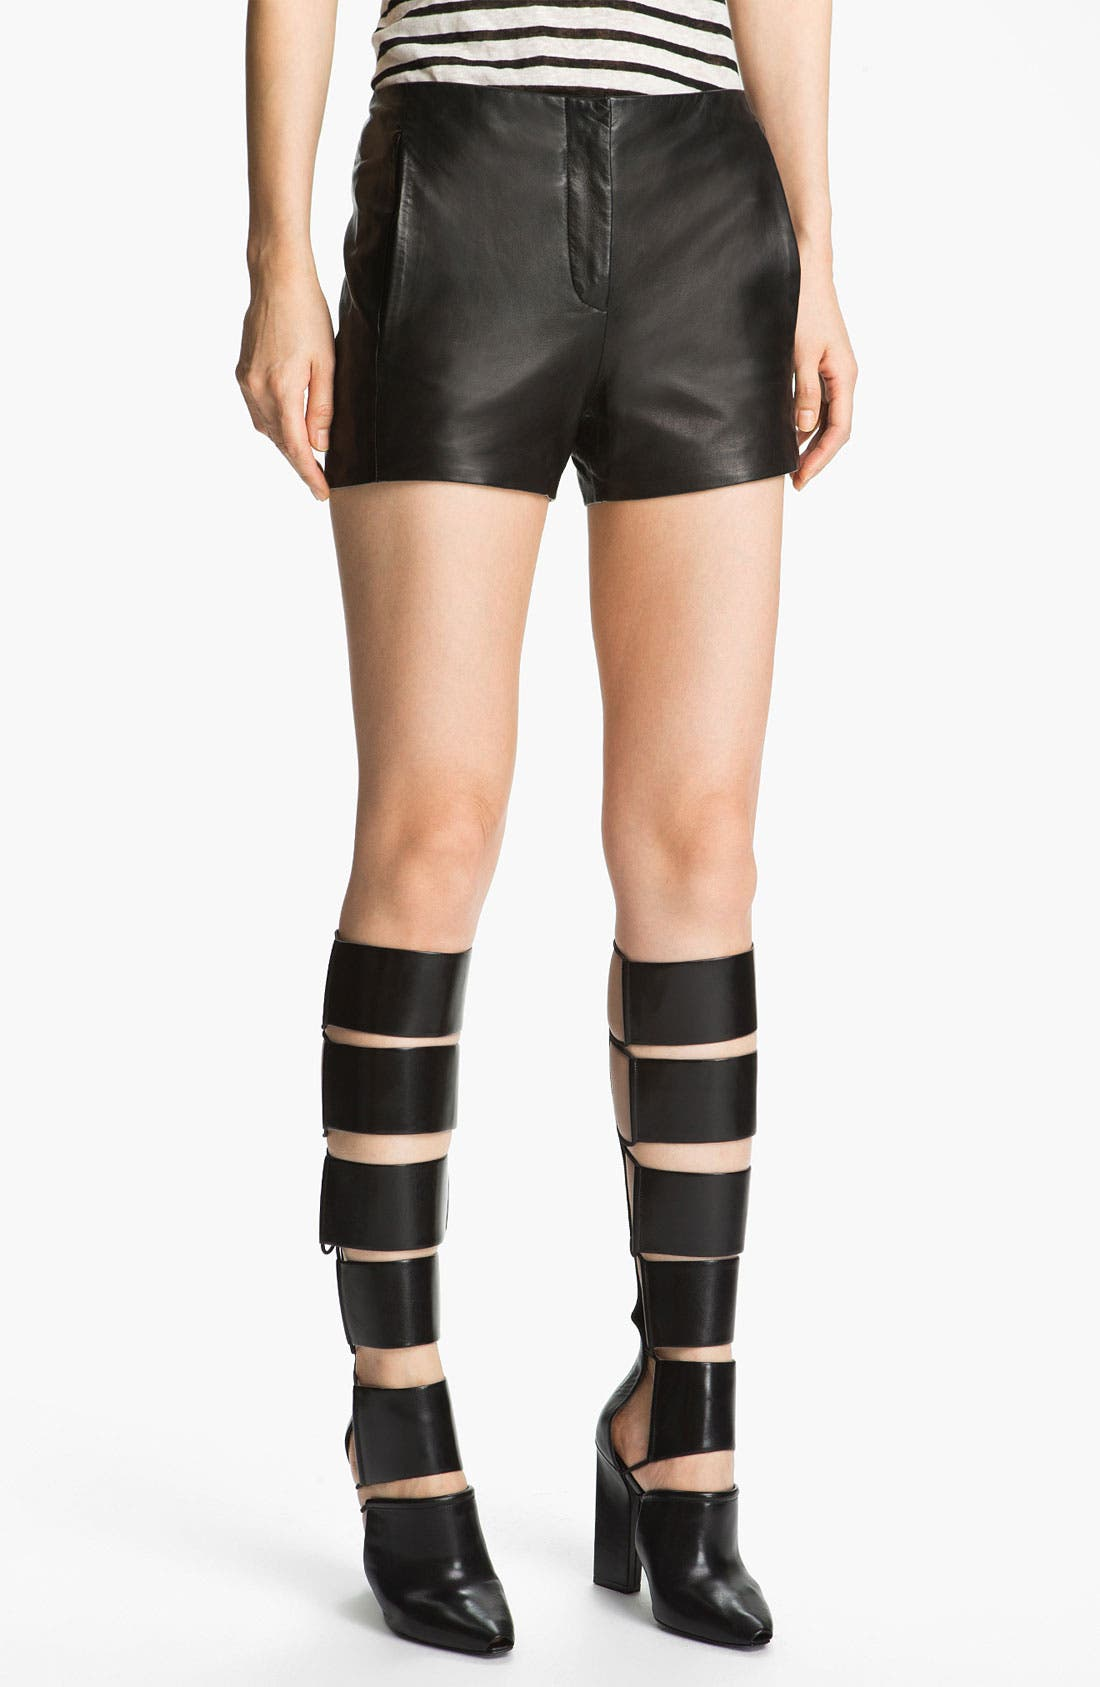 Alternate Image 1 Selected - T by Alexander Wang Lightweight Leather Shorts